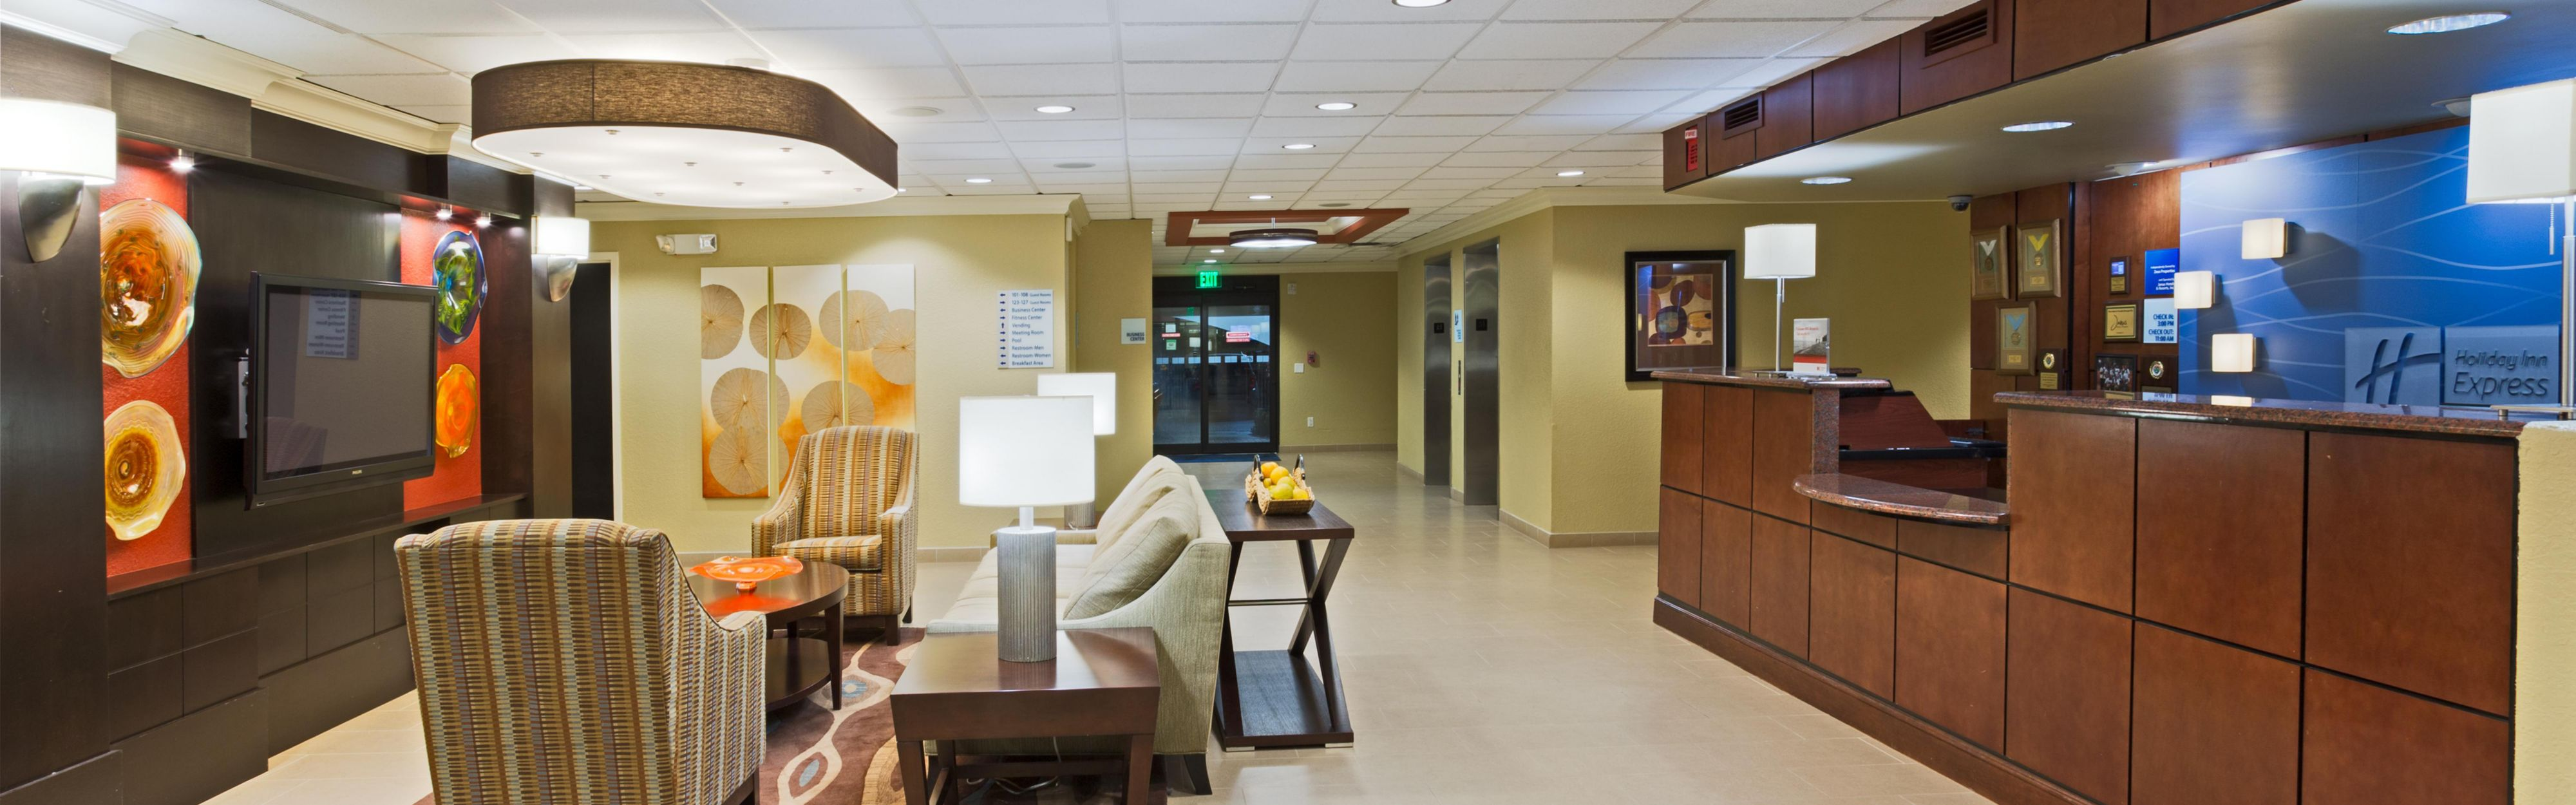 Holiday Inn Express & Suites Ft Lauderdale N - Exec Airport image 0